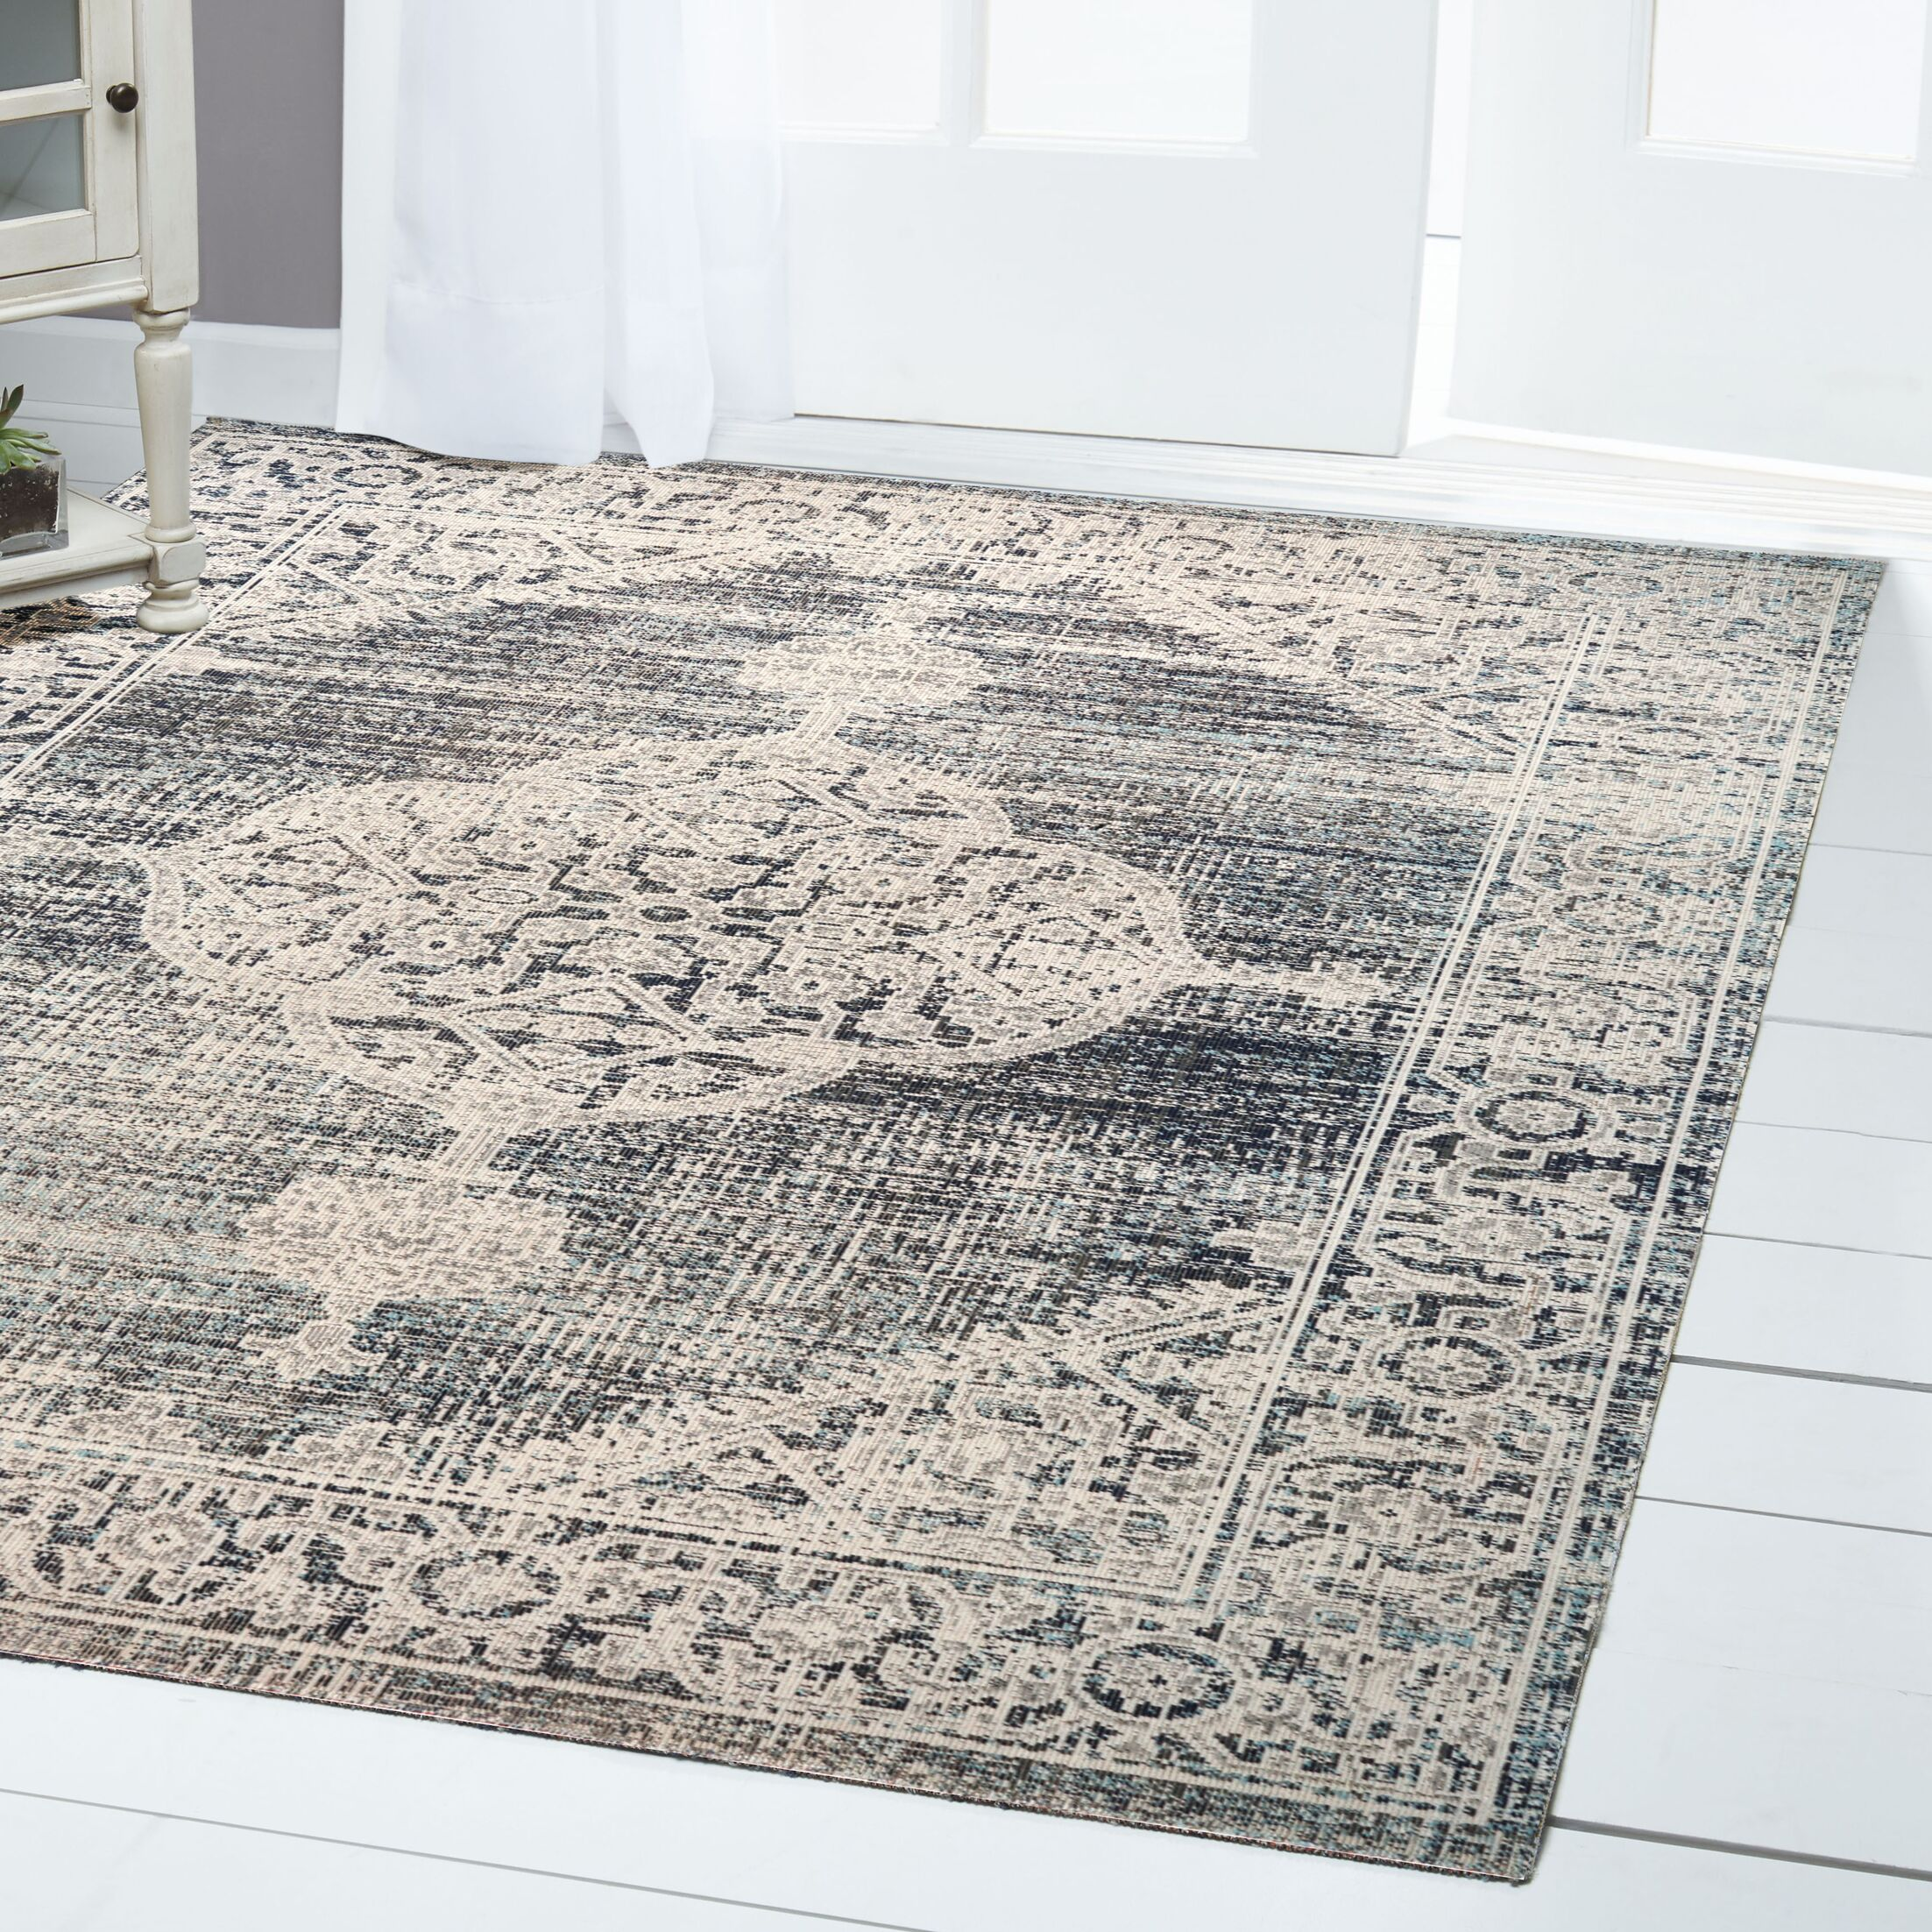 Sofia Beige/Brown Indoor/Outdoor Area Rug Rug Size: Rectangle 5'3